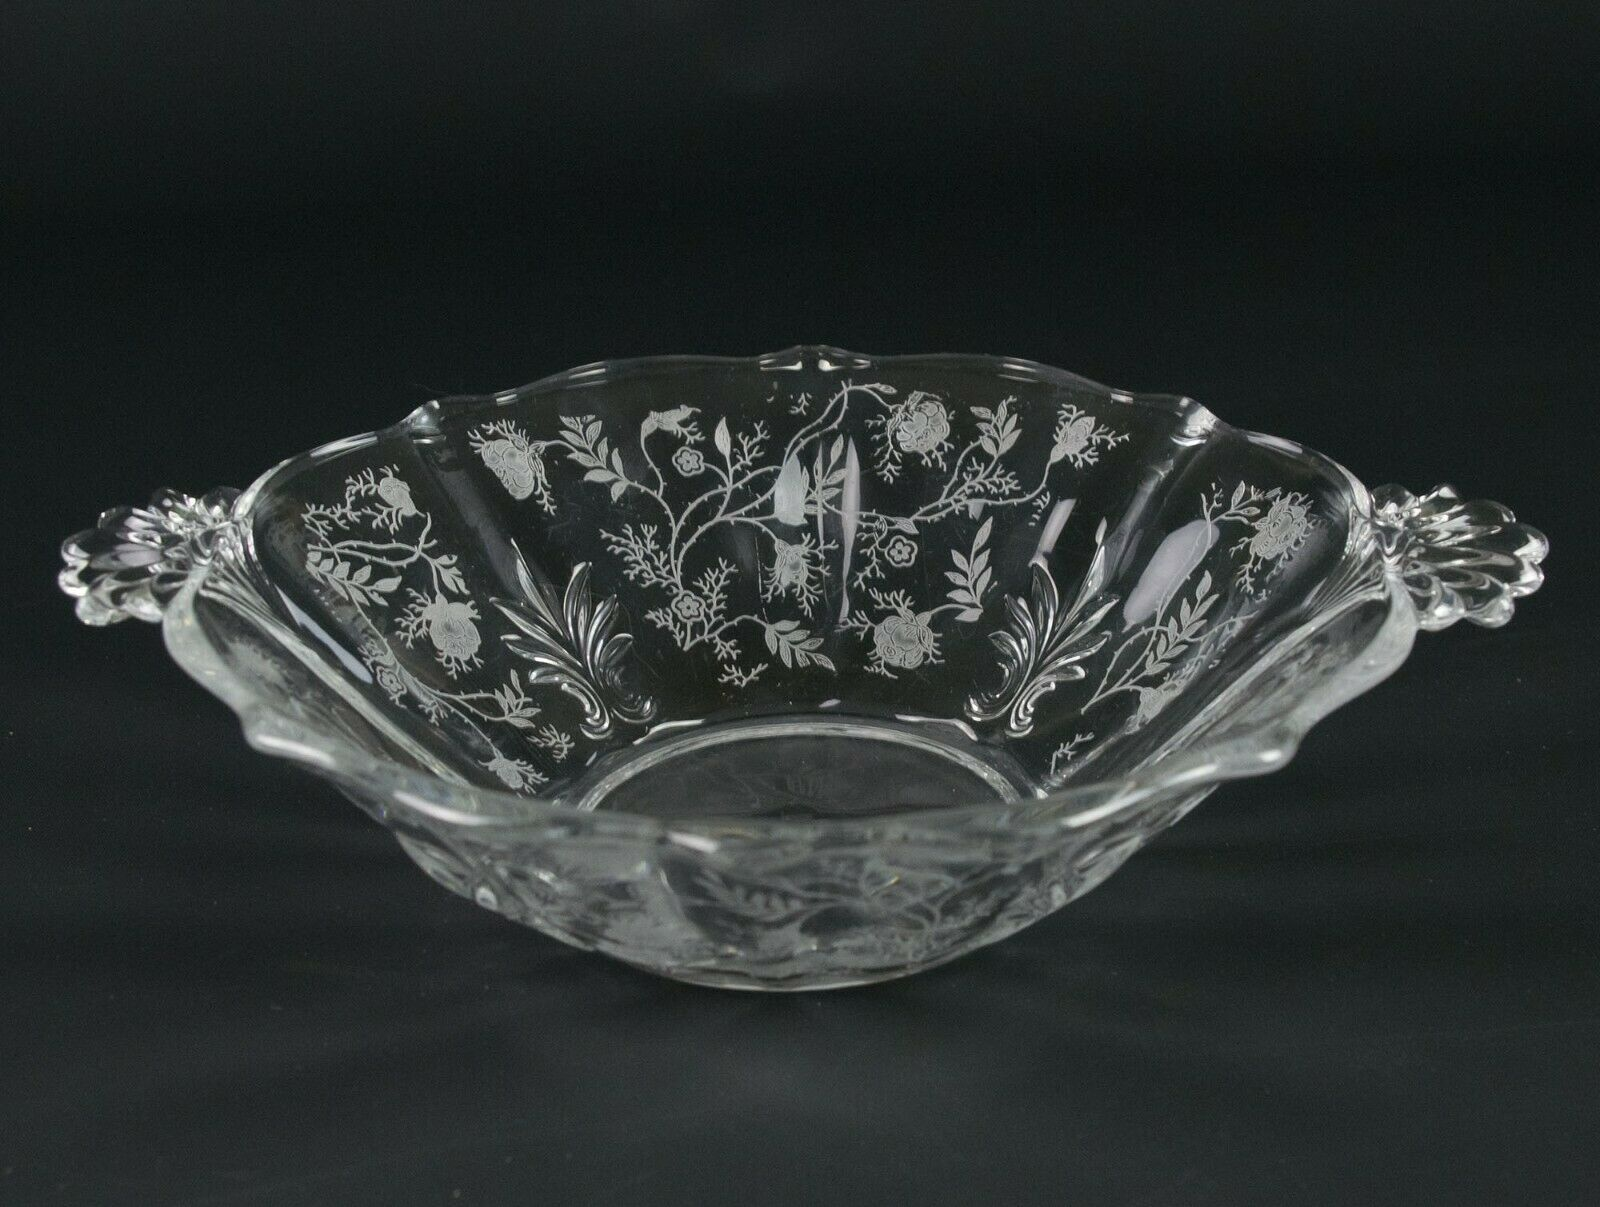 Primary image for Fostoria Chintz Handled Serving Bowl, Vintage Elegant Etched Baroque 2496 8 1/2""